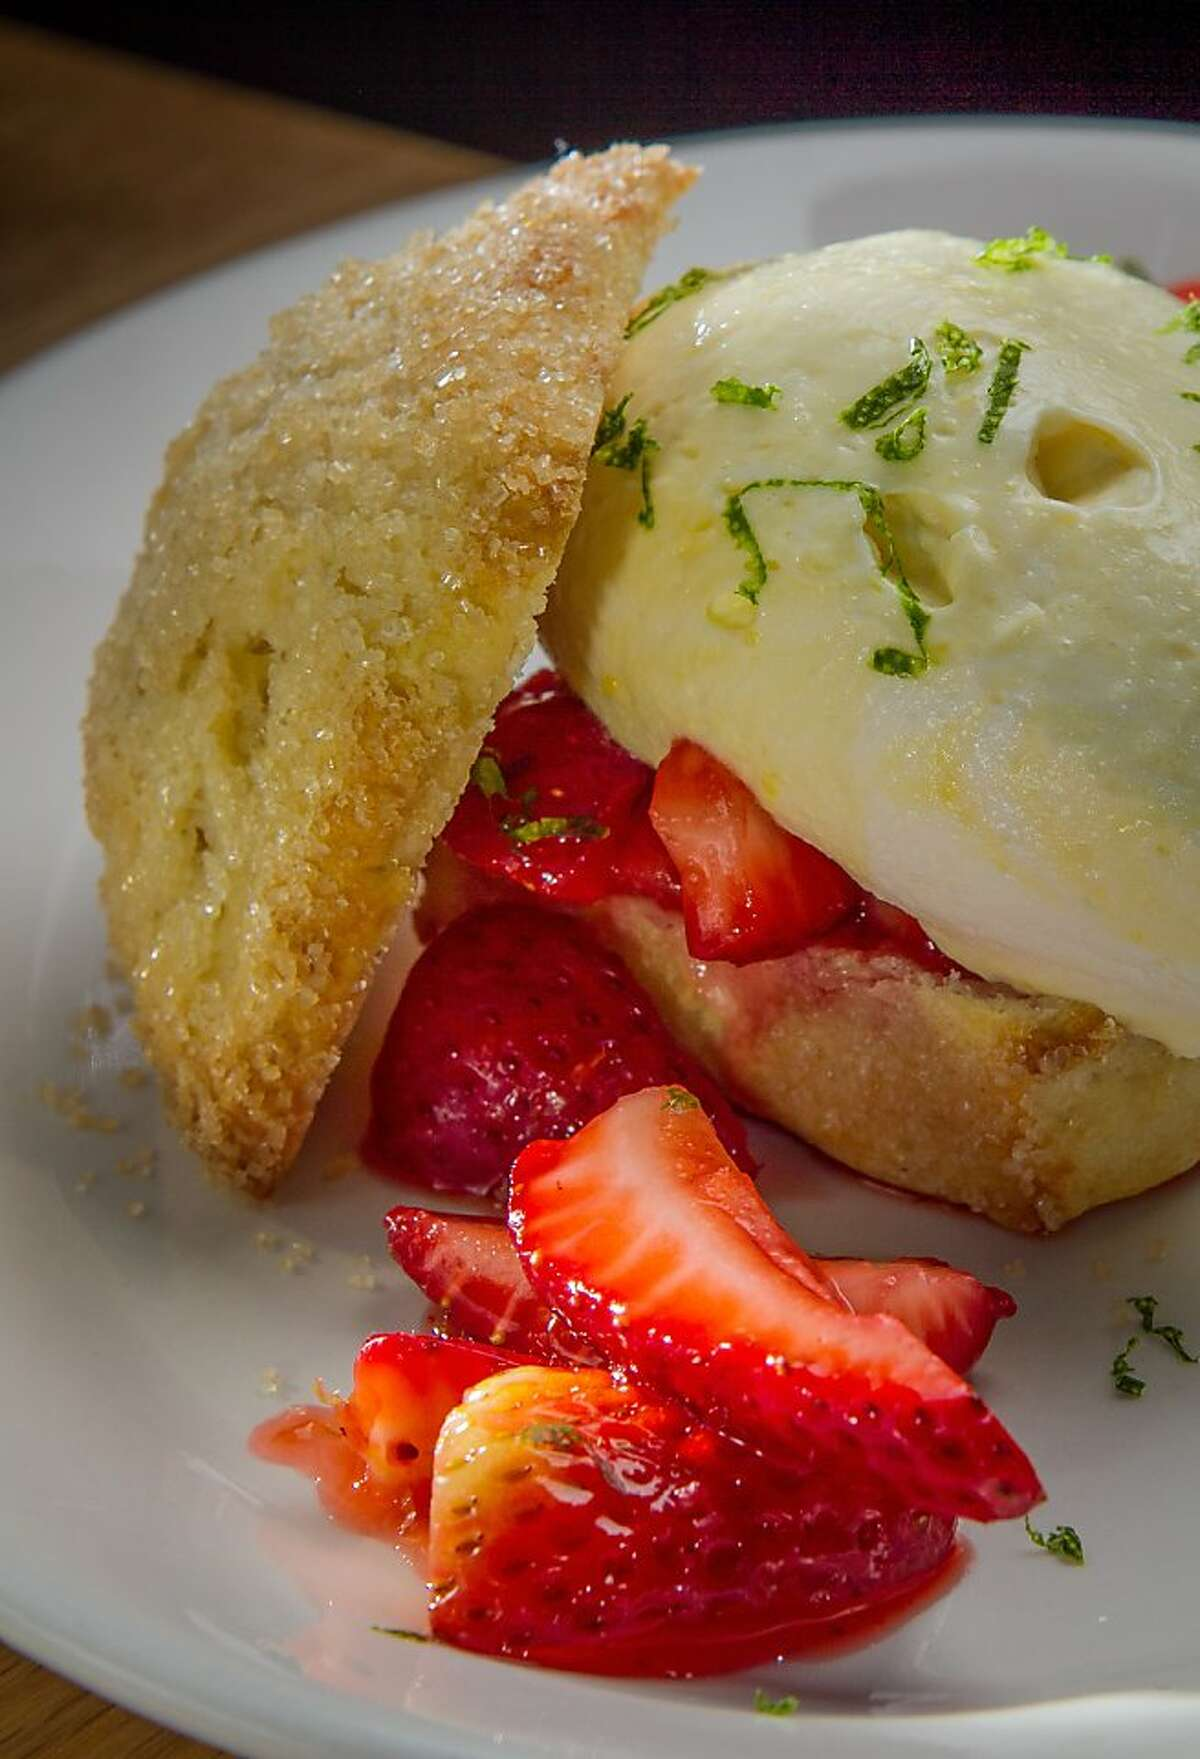 The Strawberry Shortcake at Hi Lo BBQ in San Francisco, Calif., is seen on Thursday, April 4th, 2013.